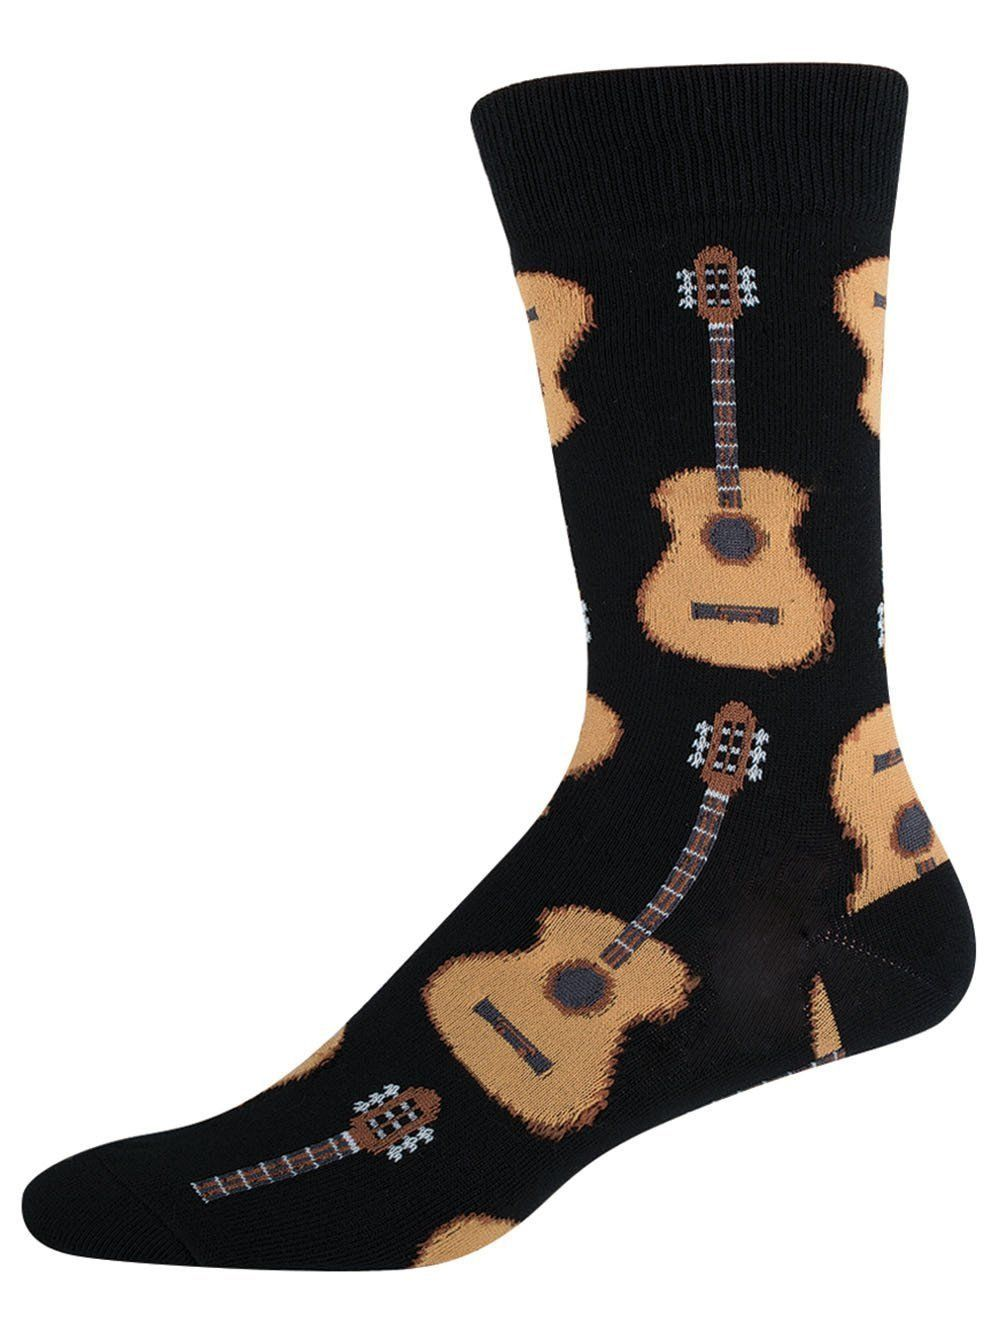 Socksmith - King Size Guitars Crew Socks | Men's - Knock Your Socks Off